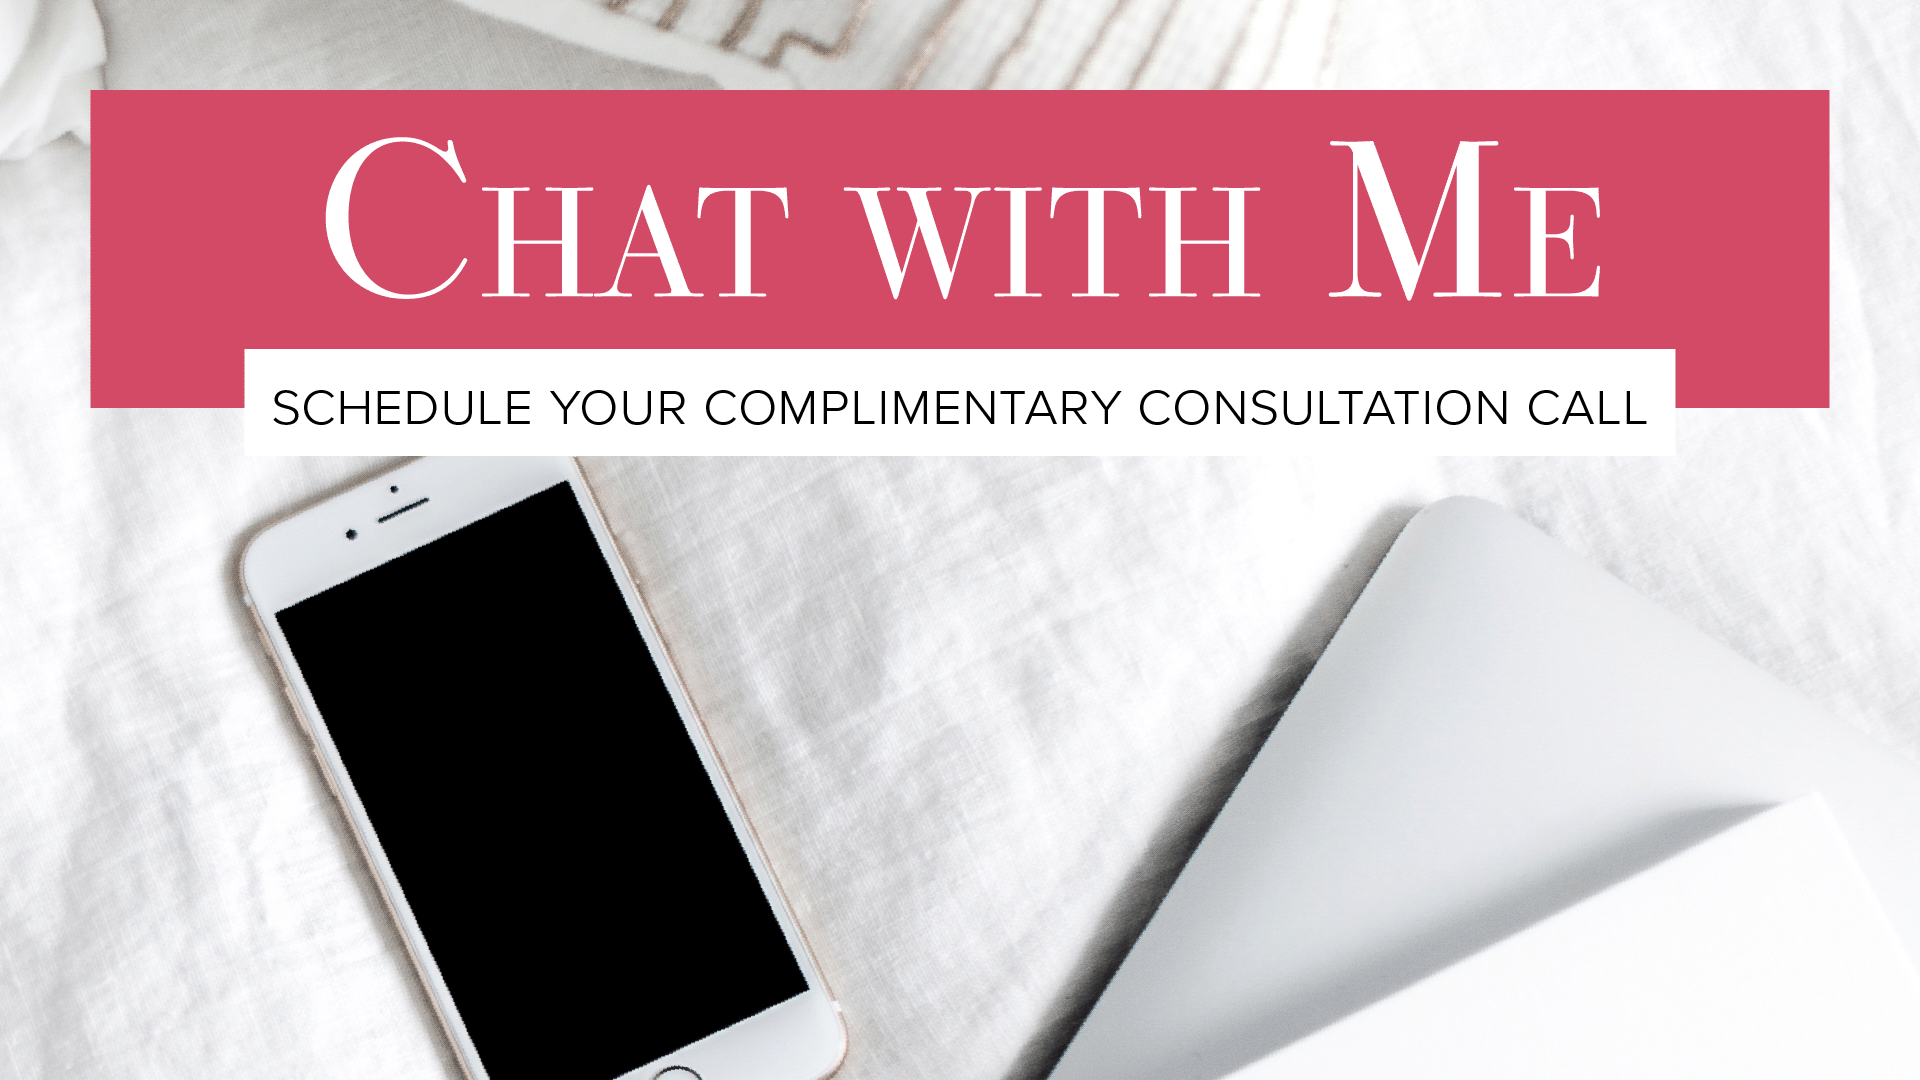 PeonyPrintshop.com     Chat with Me - Schedule Your Complimentary Consultation Calls